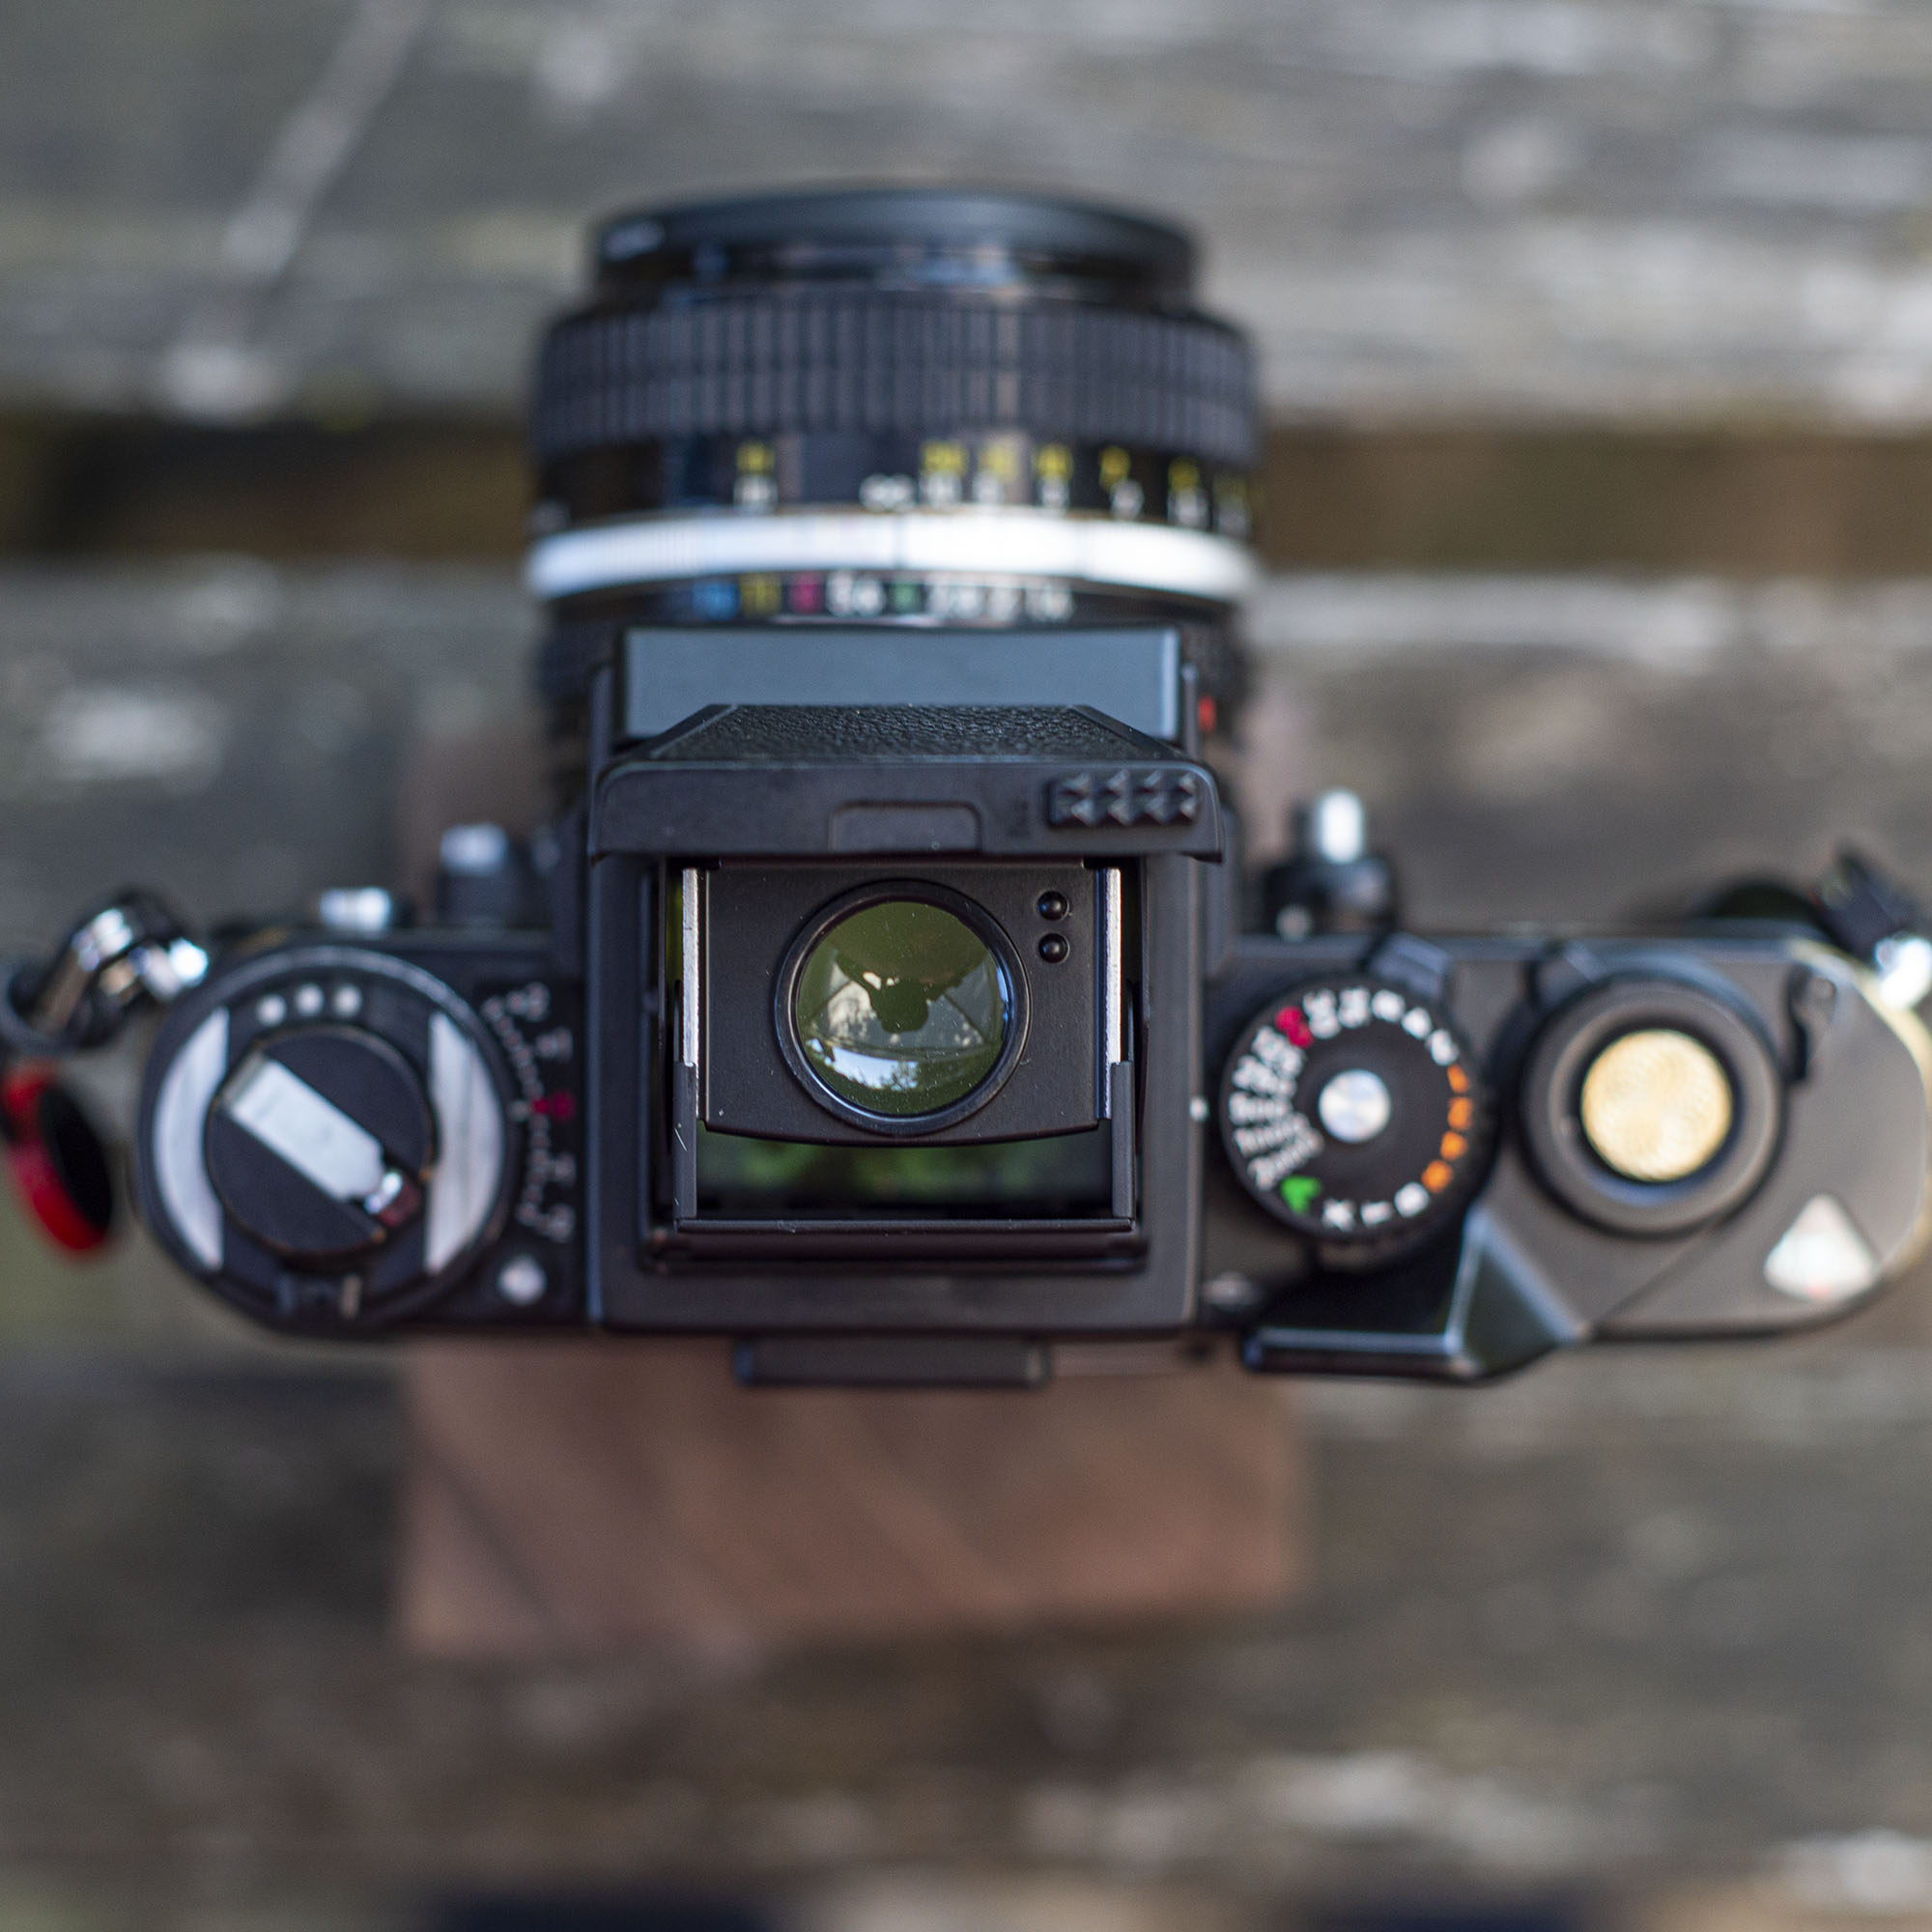 The magnifier on the Nifon F3 waist level finder